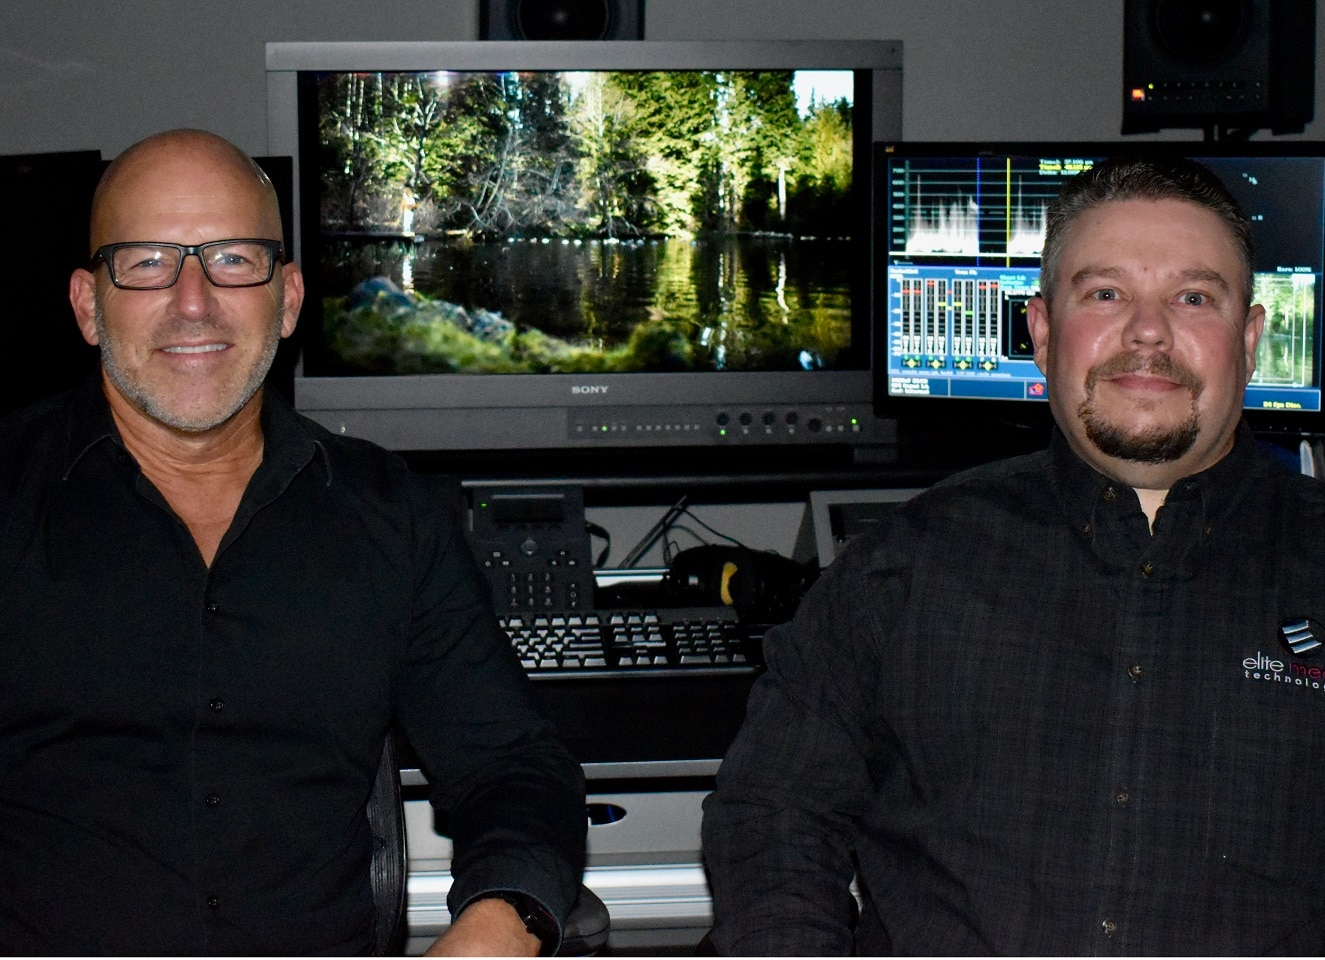 Interior of Elite Media AV suite. Rear view of Jason Altman and Nick Mairose, operating a video mixing desk.